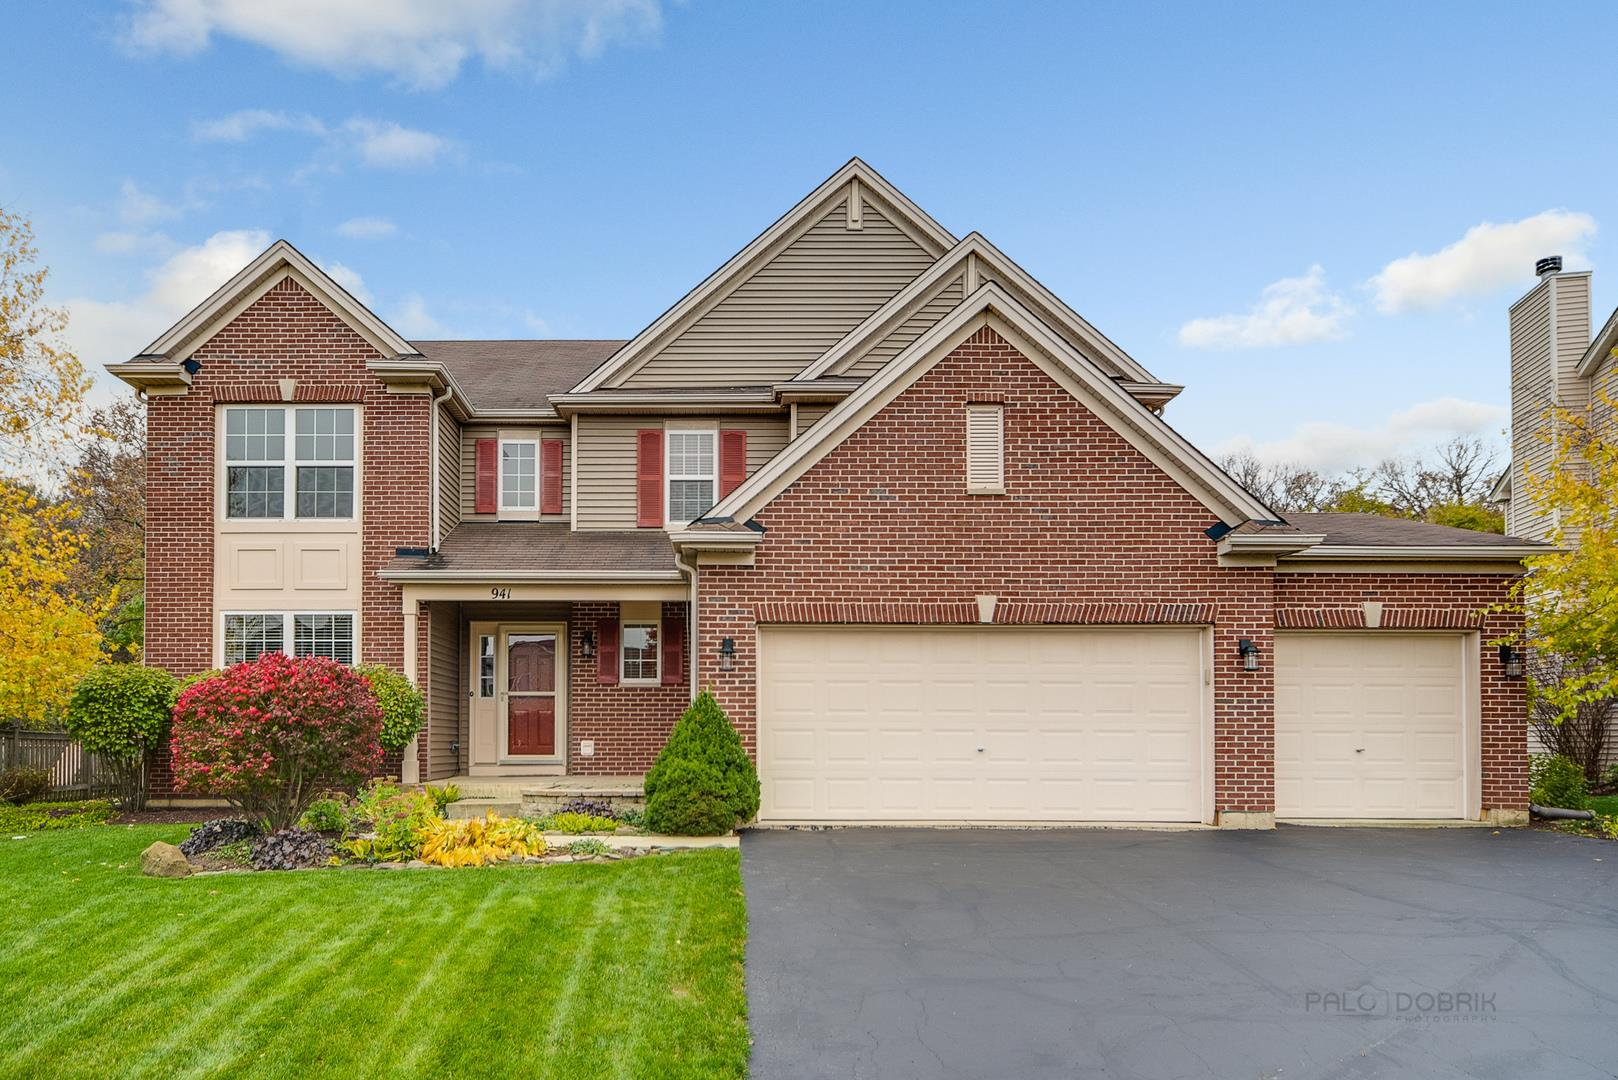 941 STERLING HEIGHTS Drive, Antioch, IL 60002 - #: 10932681